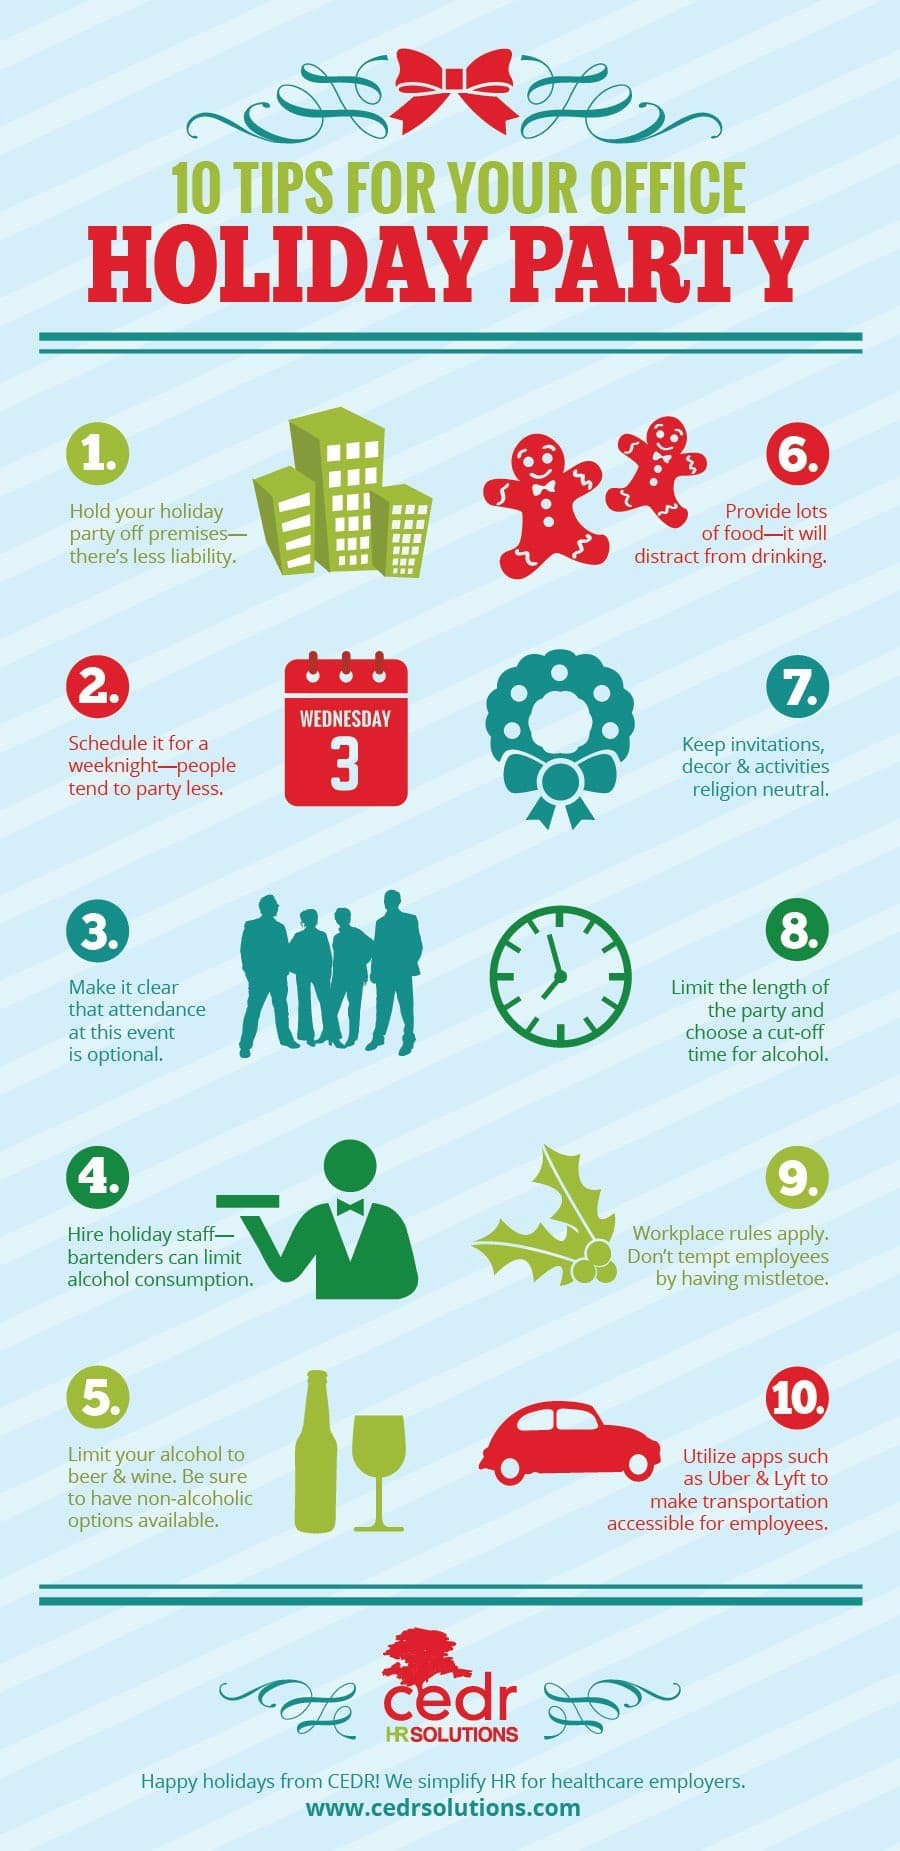 10 tips for your office holiday party a cedr hr infographic 10 holiday party tips a cedr hr infographic